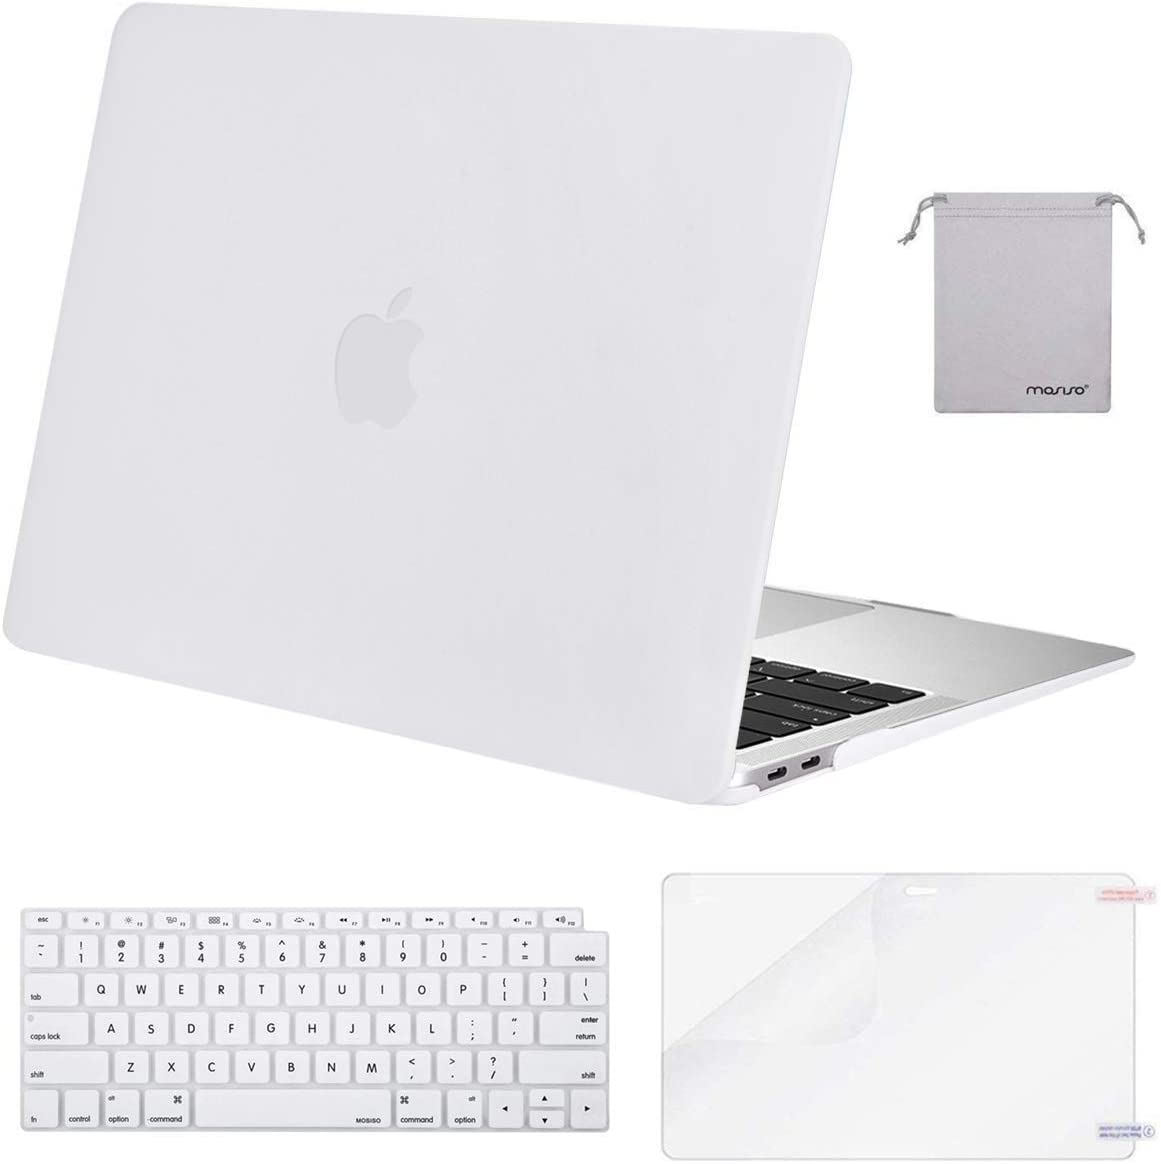 Carcasa Rigida Para Macbook Air De 13 2017 (xam)